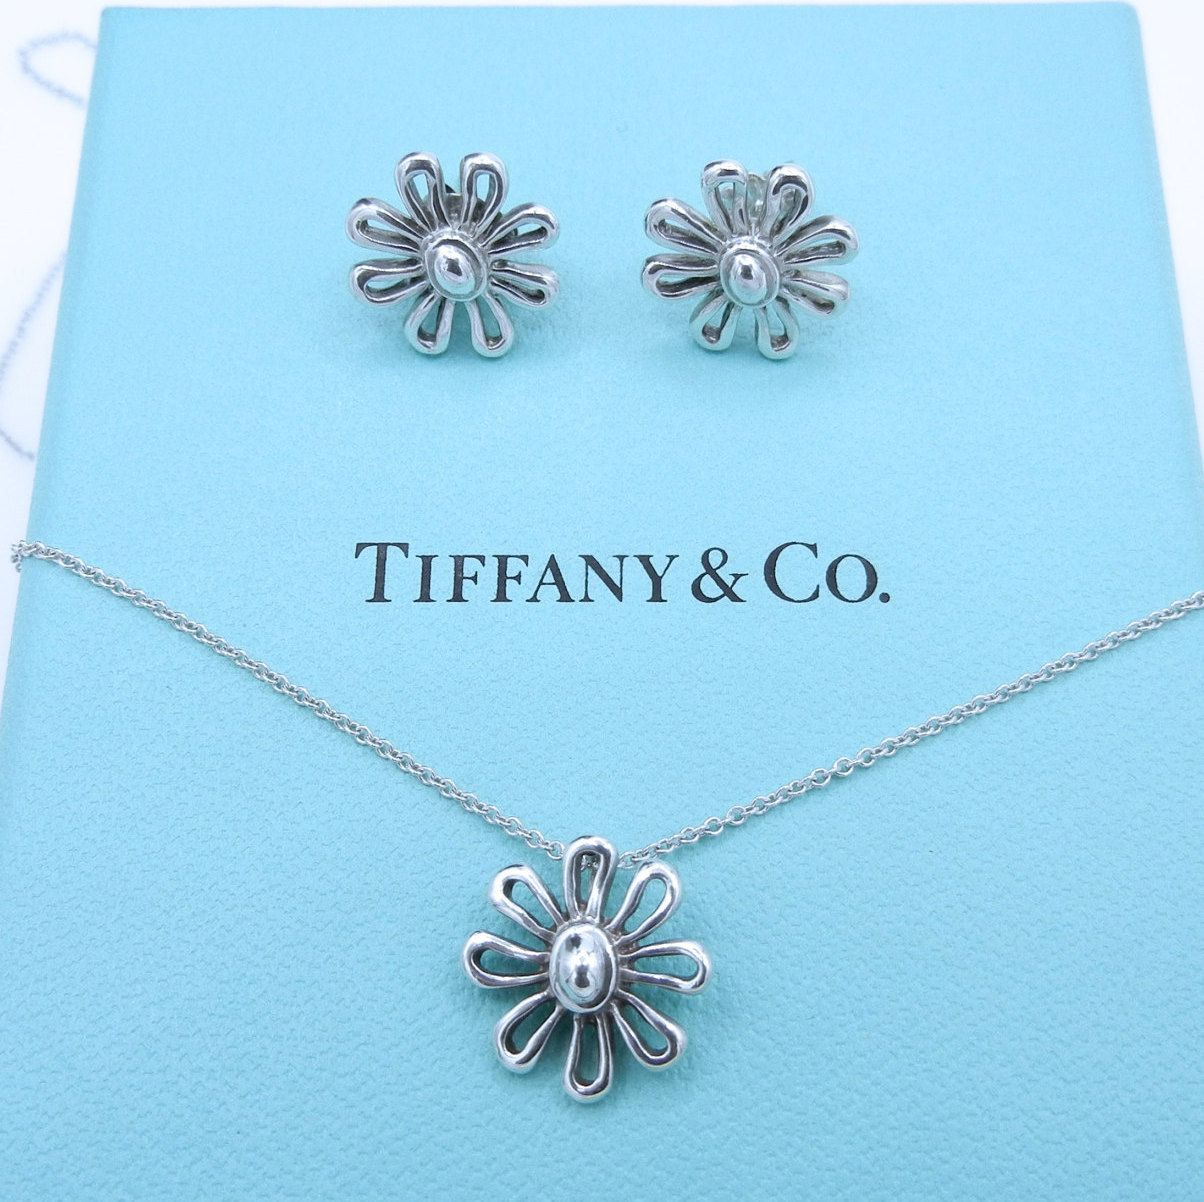 f49764b38 Tiffany & Co Daisy Paloma Picasso Set - Sterling Silver Daisy Pendant  Necklace and Earrings Set - Retired - Floral - Flower set # 4366 by  WatchandWares on ...